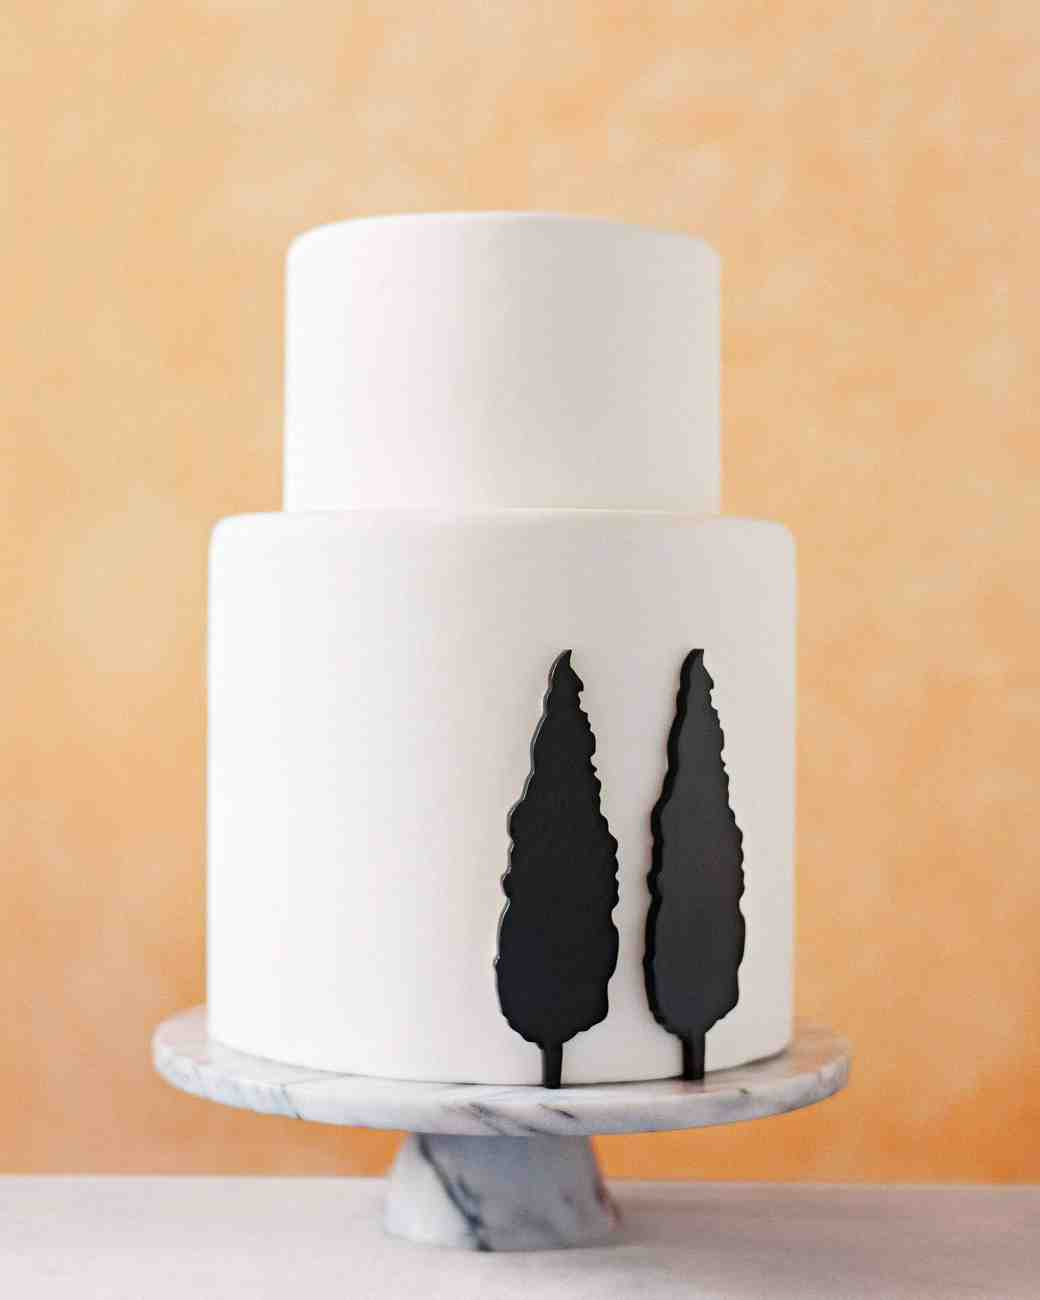 dennis-bryan-wedding-italy-black-white-wedding-cake-trees-008-0080-s112633.jpg